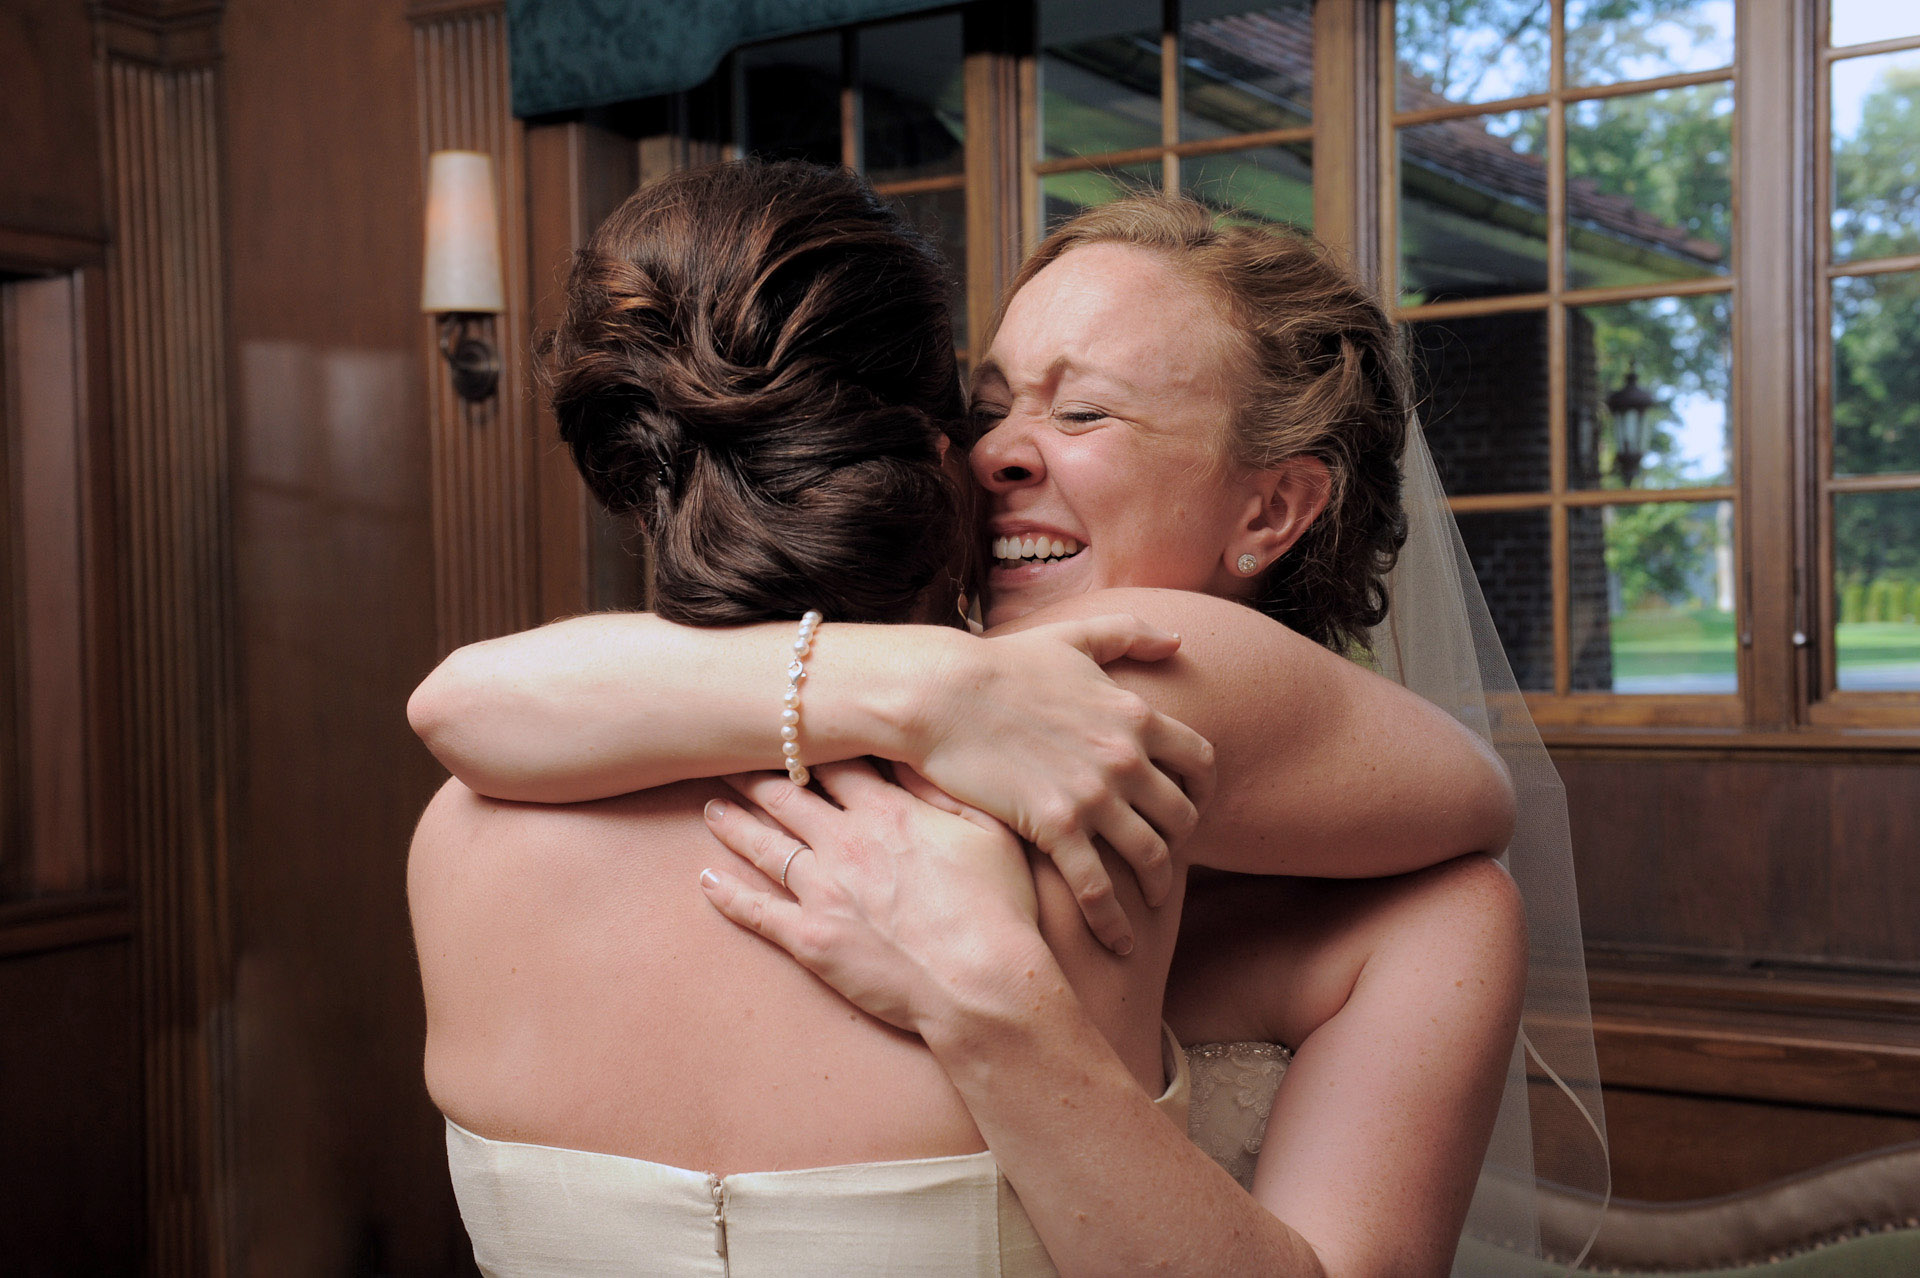 Detroit Golf Club wedding photographer's photo of the bride sharing a cry with one of her bridesmaids after her wedding ceremony at the Detroit Golf Club.